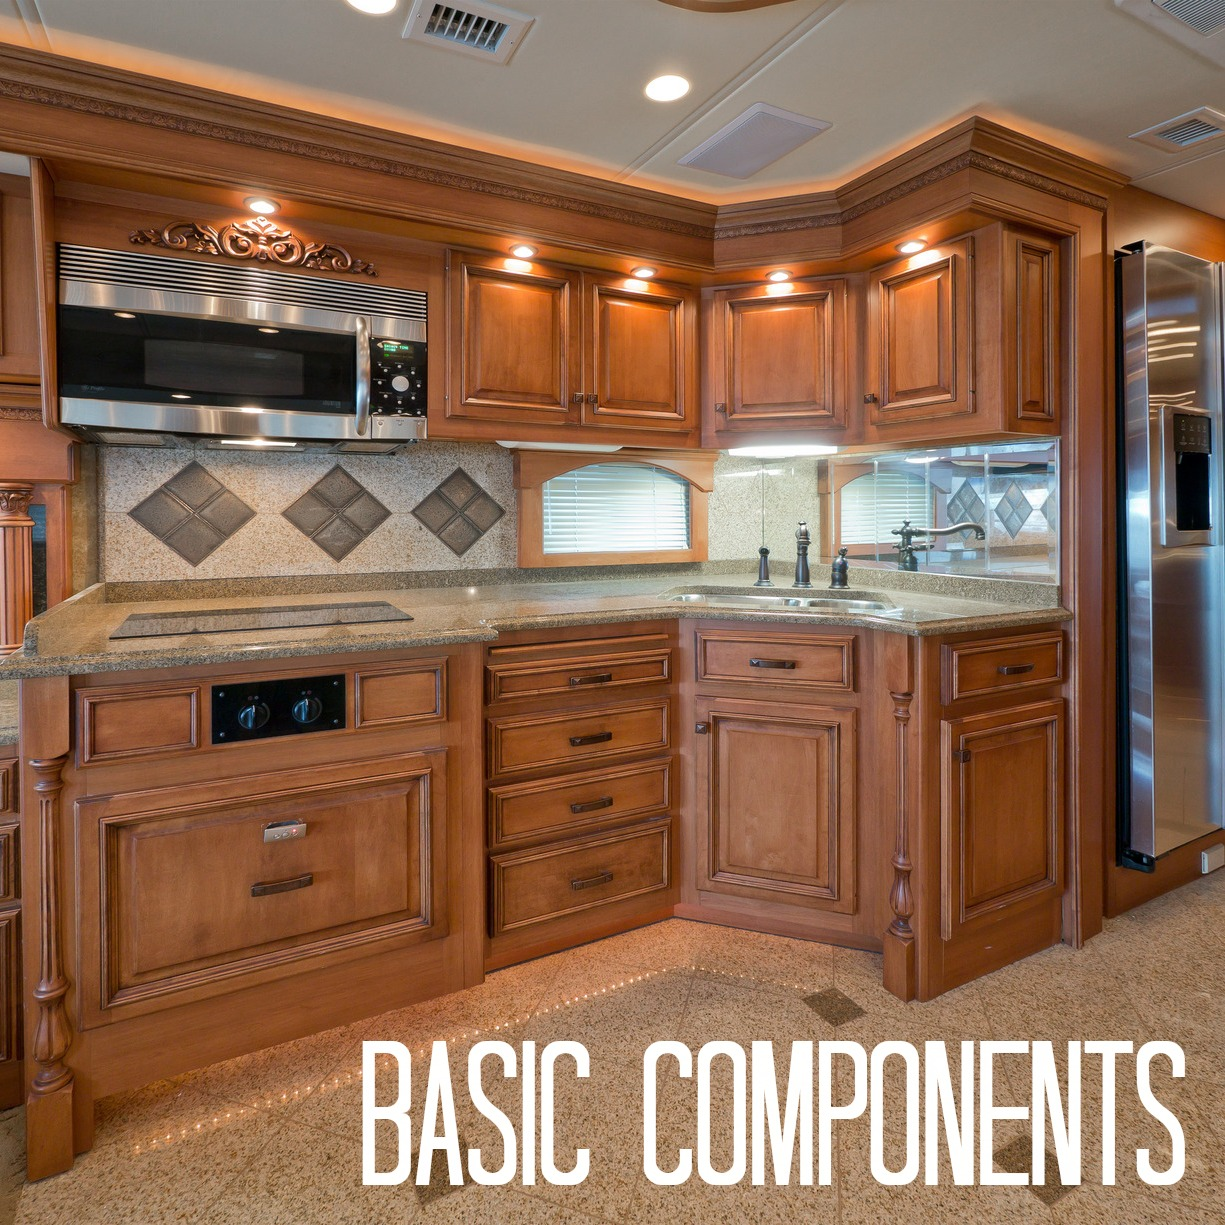 Mobile Home Parts for Construction and Repair | Basic Components